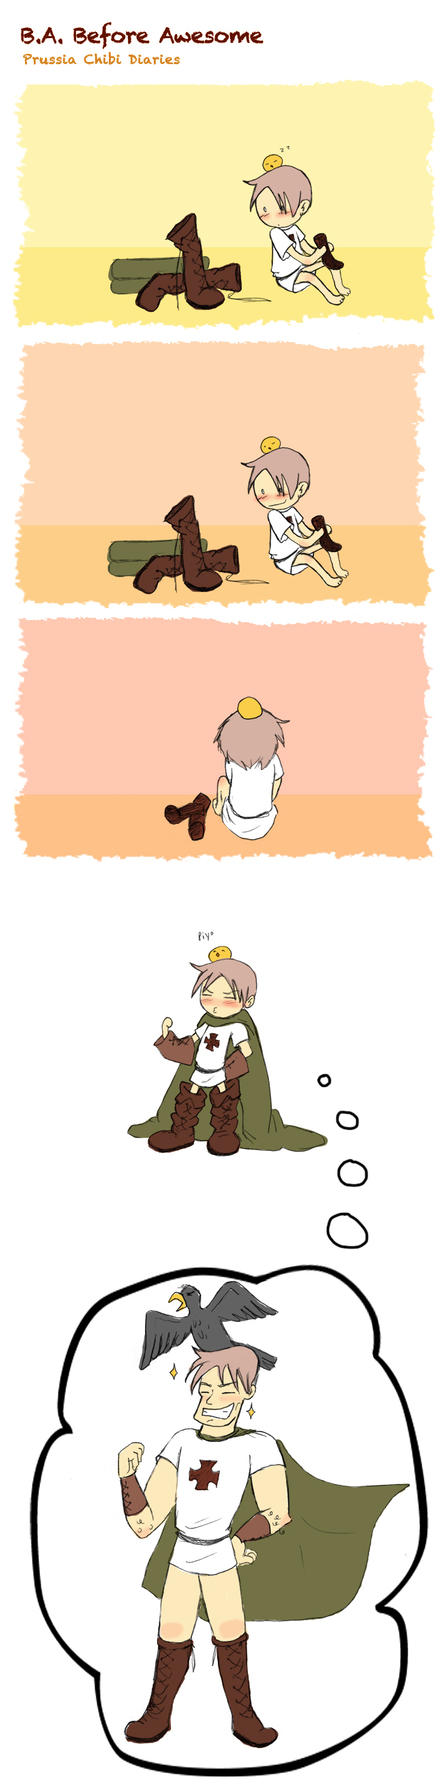 Chibi Prussia Diaries -023- by Arkham-Insanity